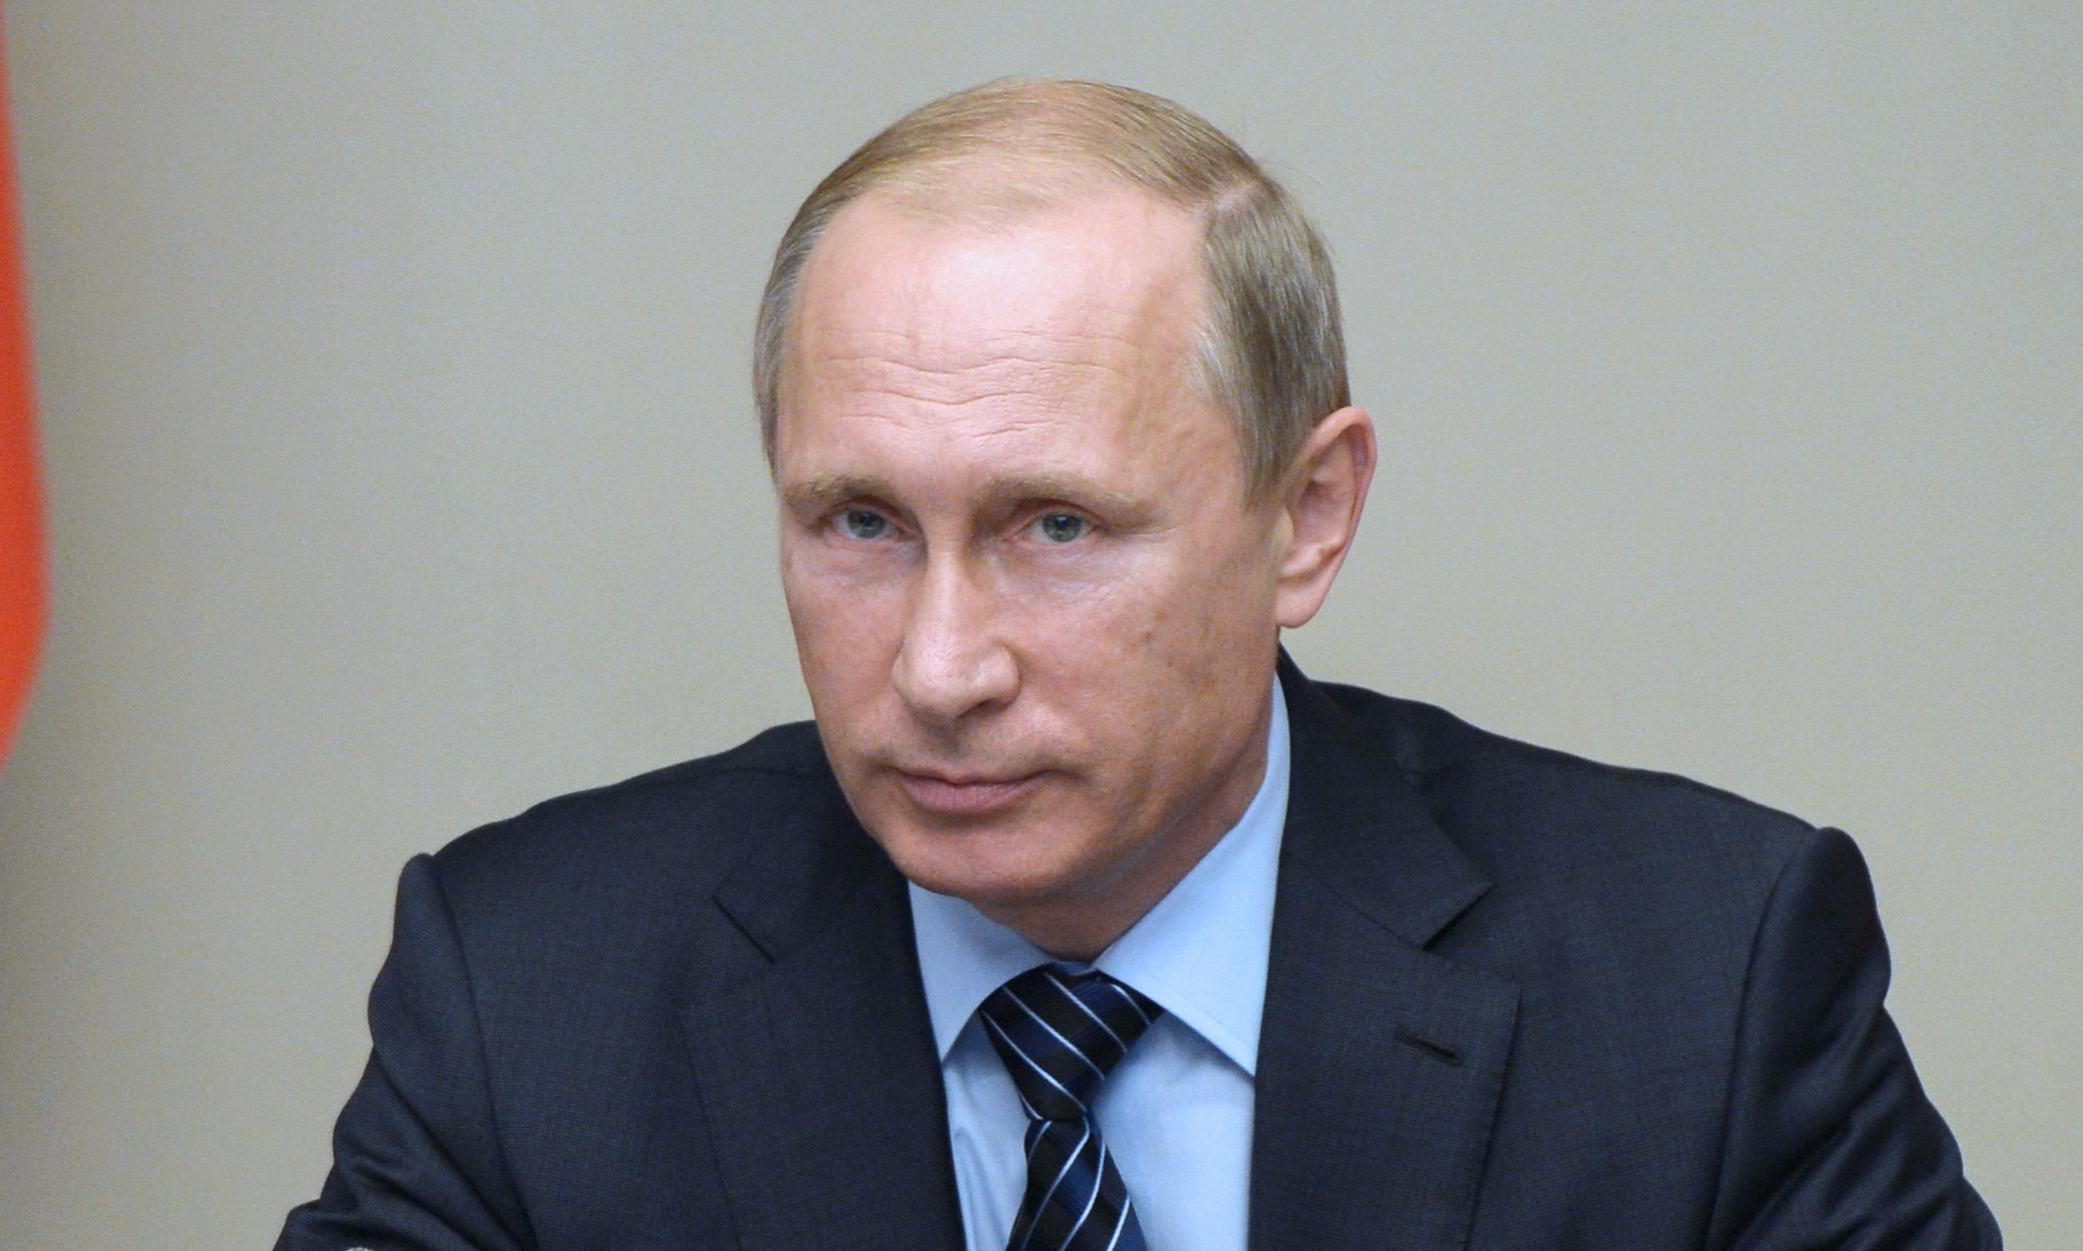 Putin says he can work with Obama despite trading barbs on Syria and Isis